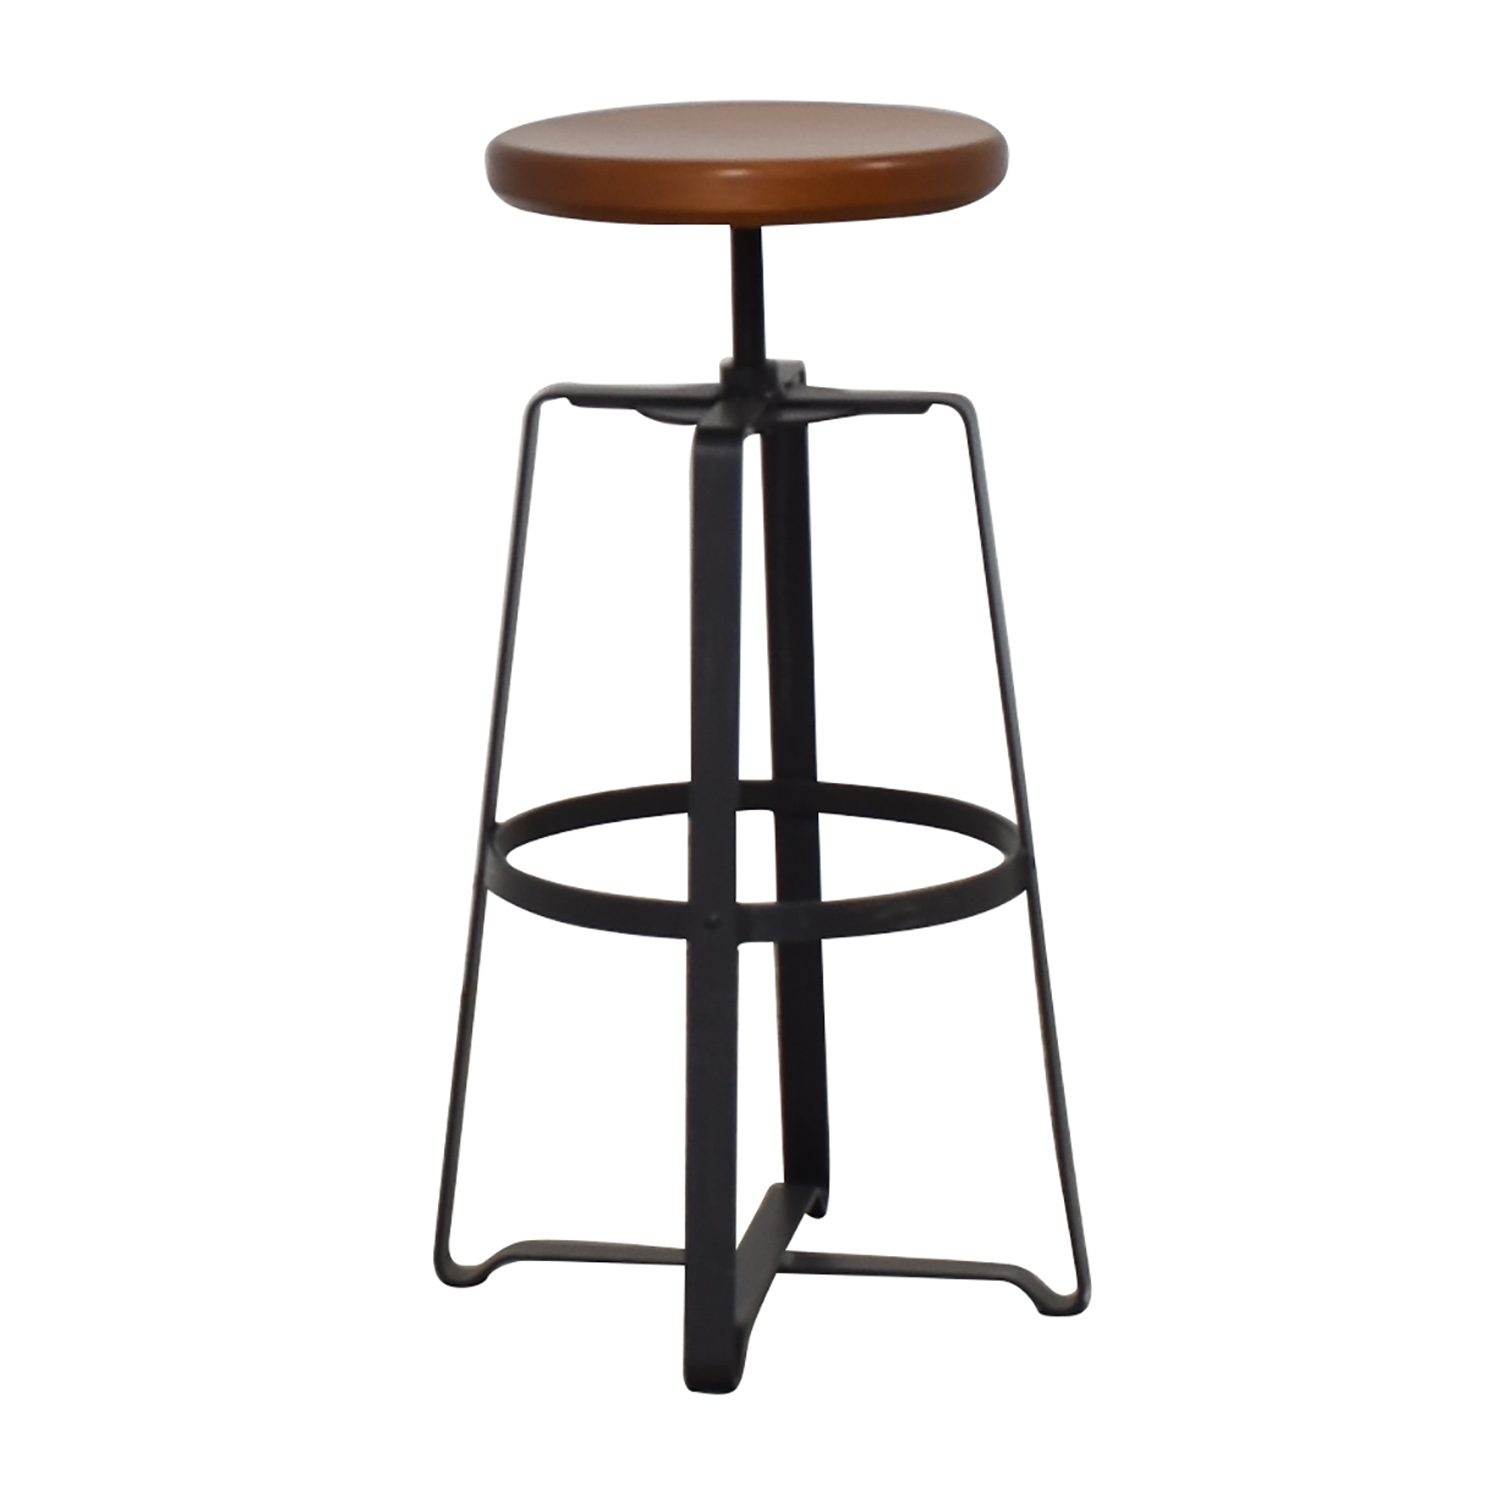 buy West Elm Adjustable Industrial Stool West Elm